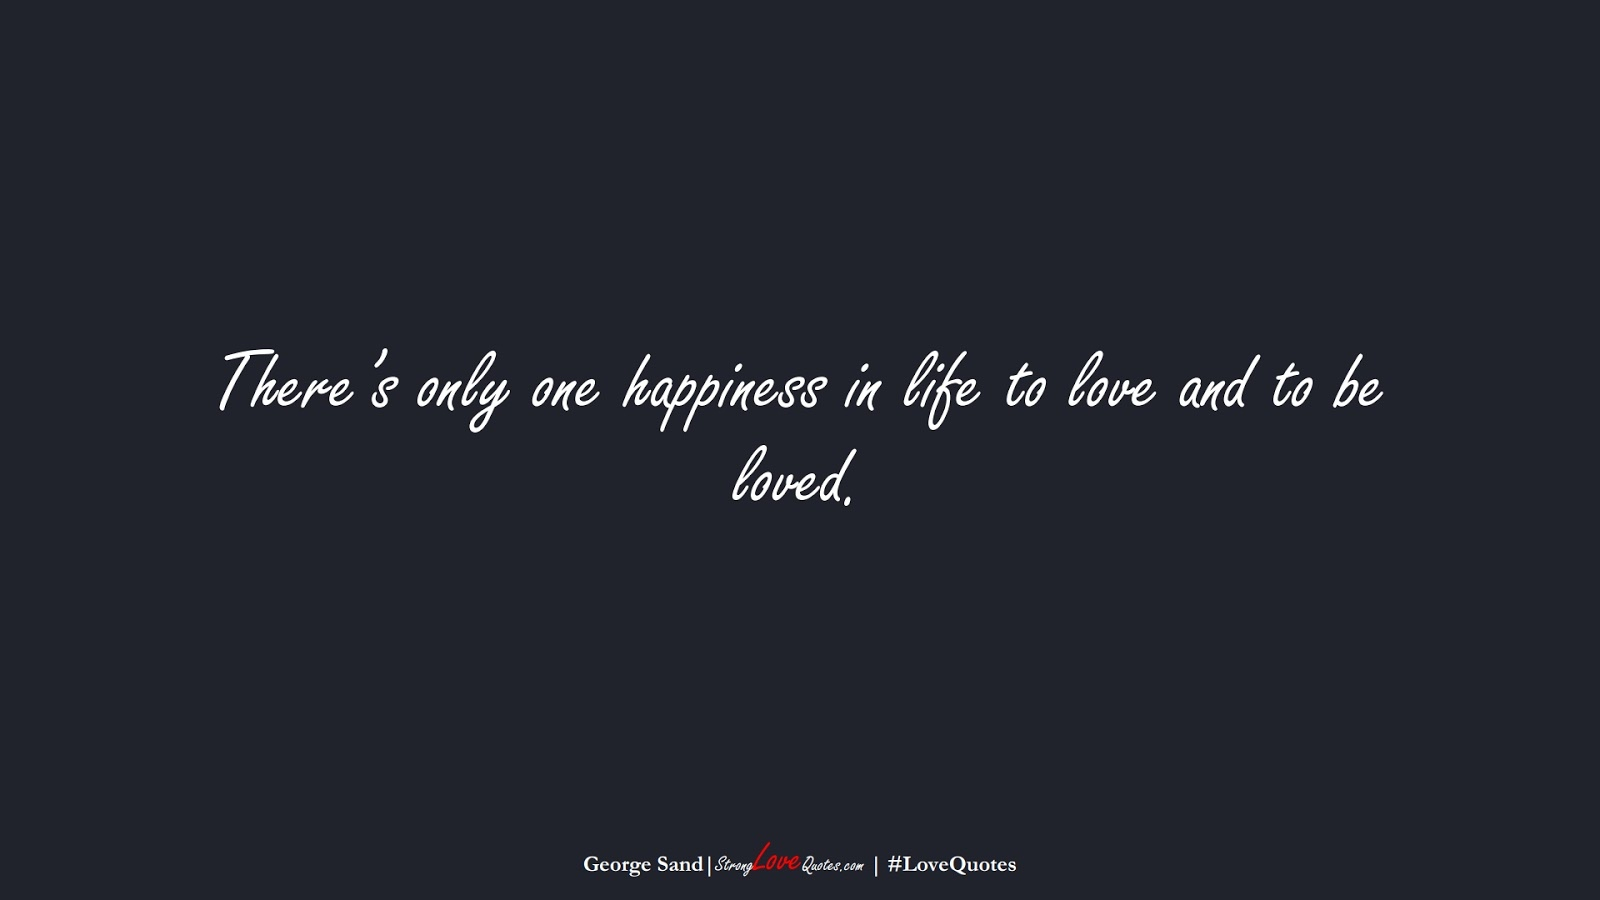 There's only one happiness in life to love and to be loved. (George Sand);  #LoveQuotes